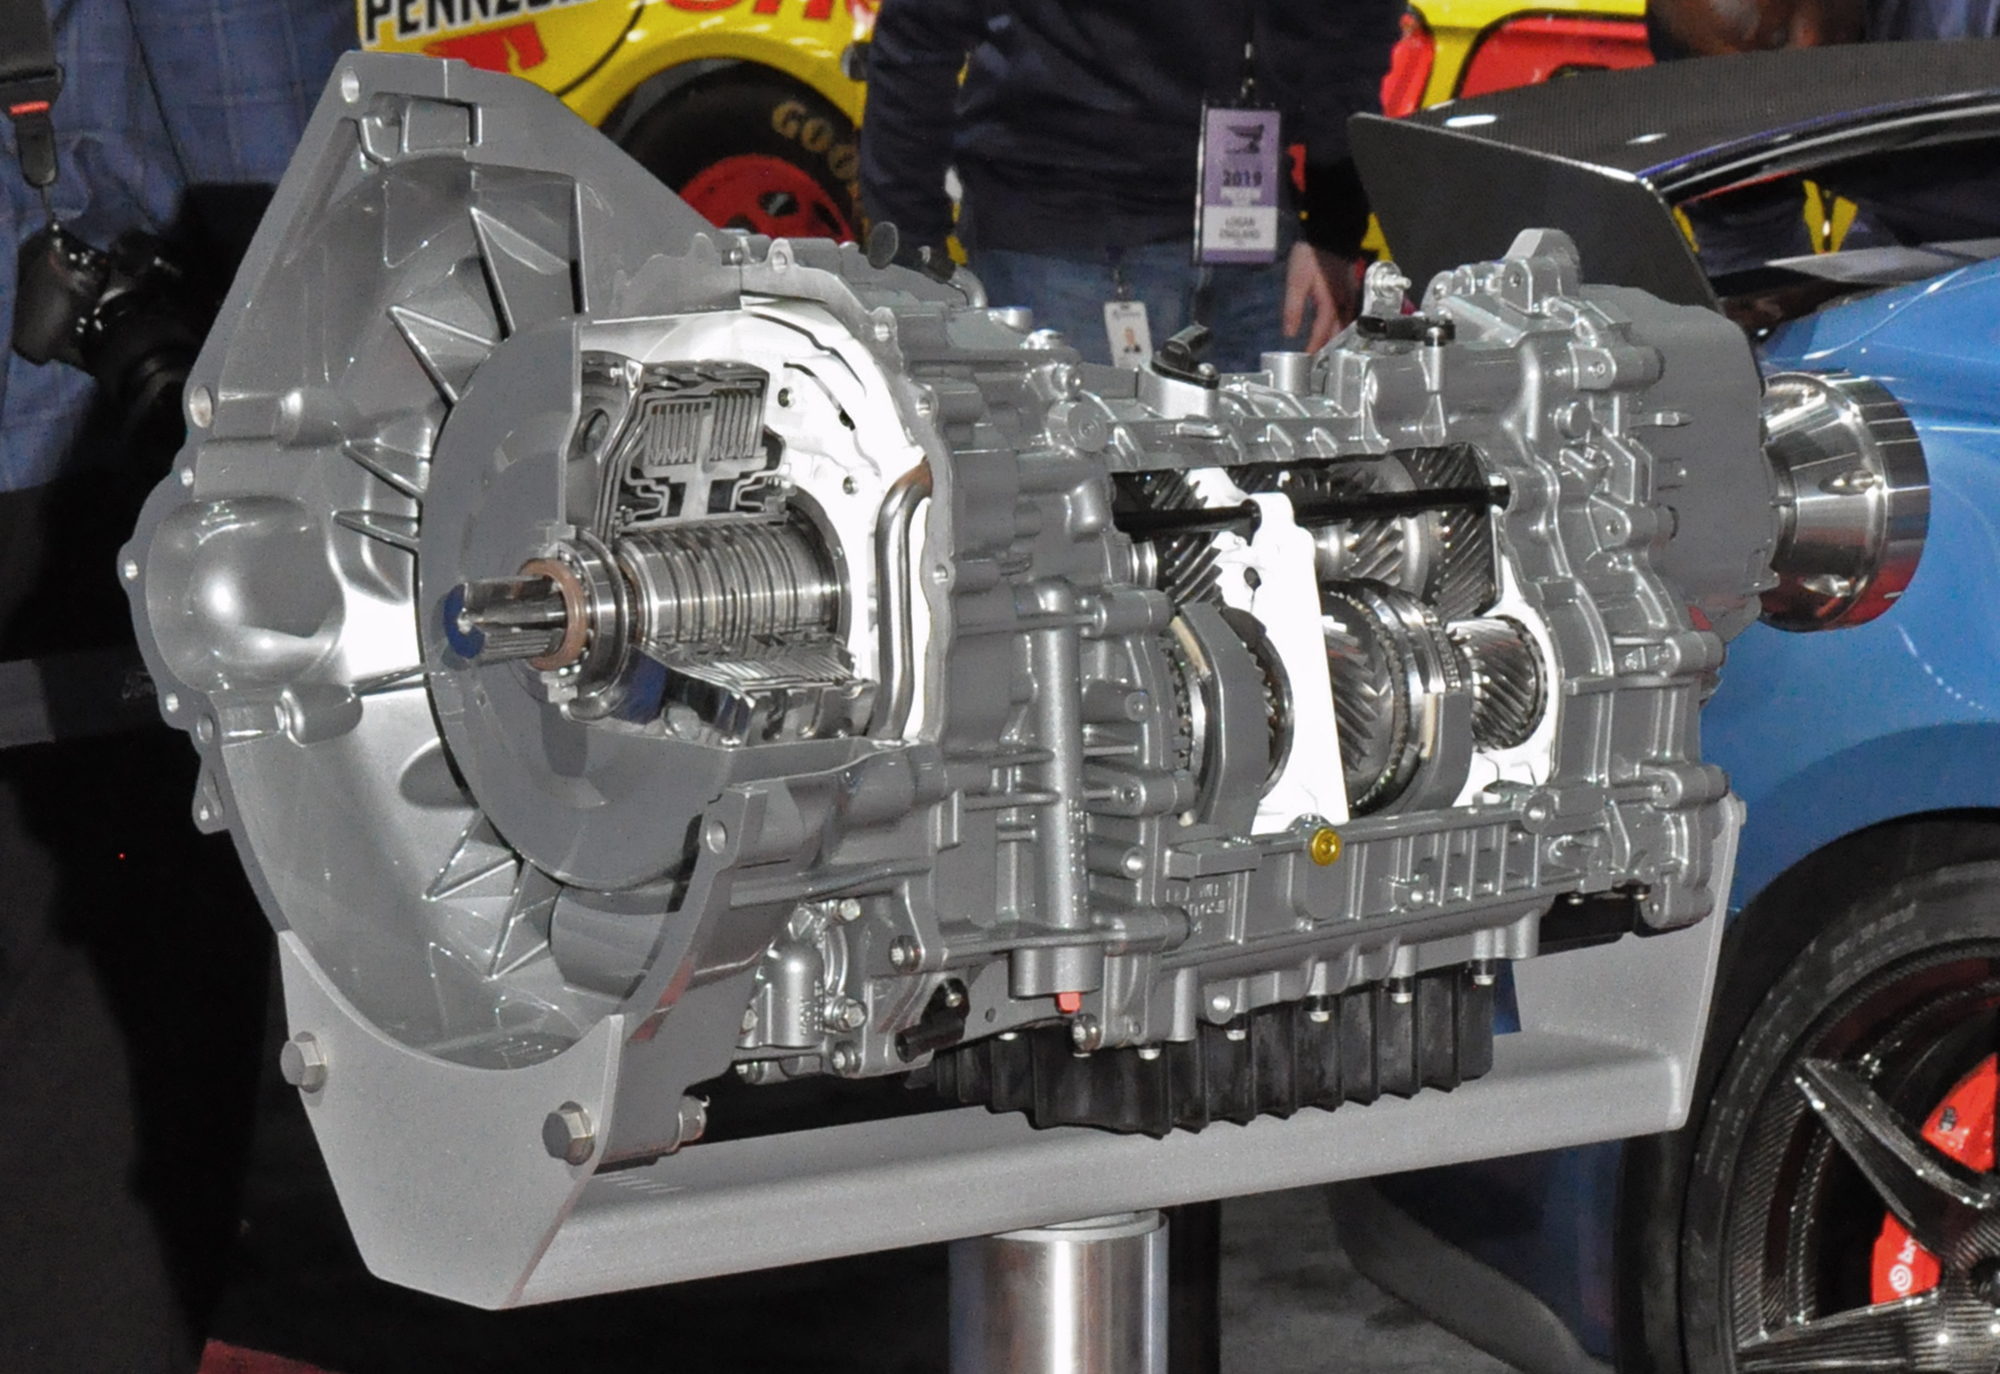 Better Than A Stick? Here's A Look At The New TREMEC 7-Speed Dual Clutch Transmission In The Shelby GT500